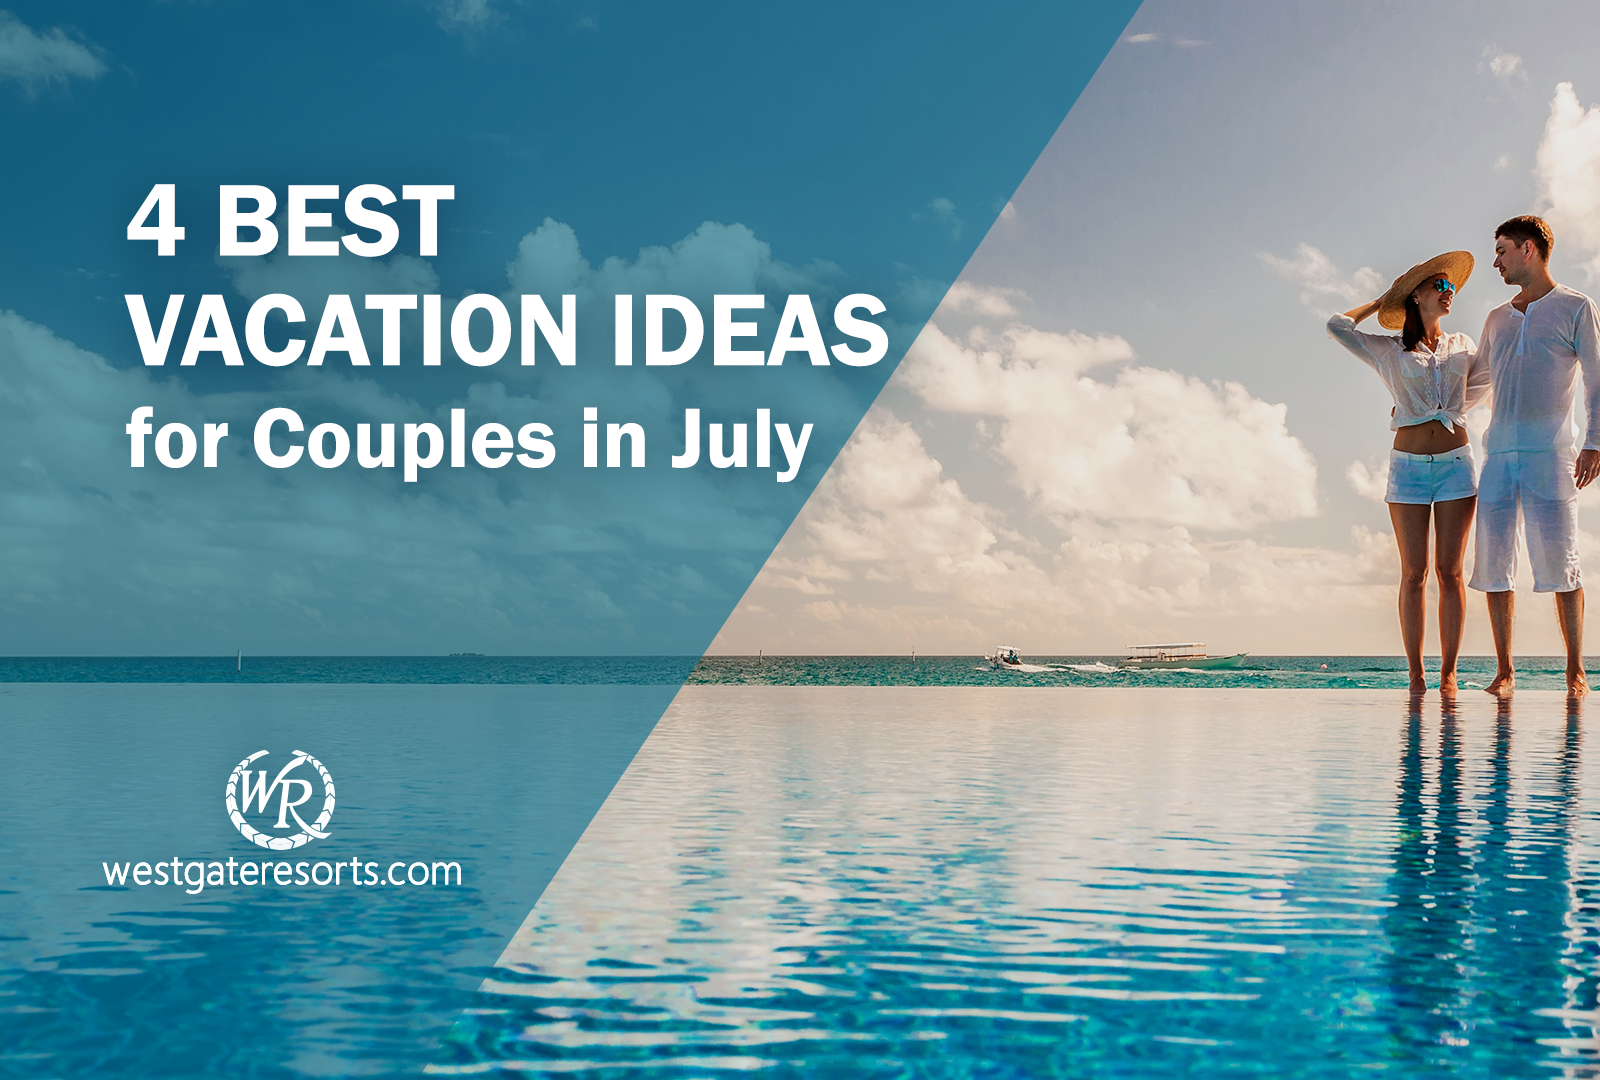 4 Best Vacation Ideas for Couples in July | Best Vacation Spots in